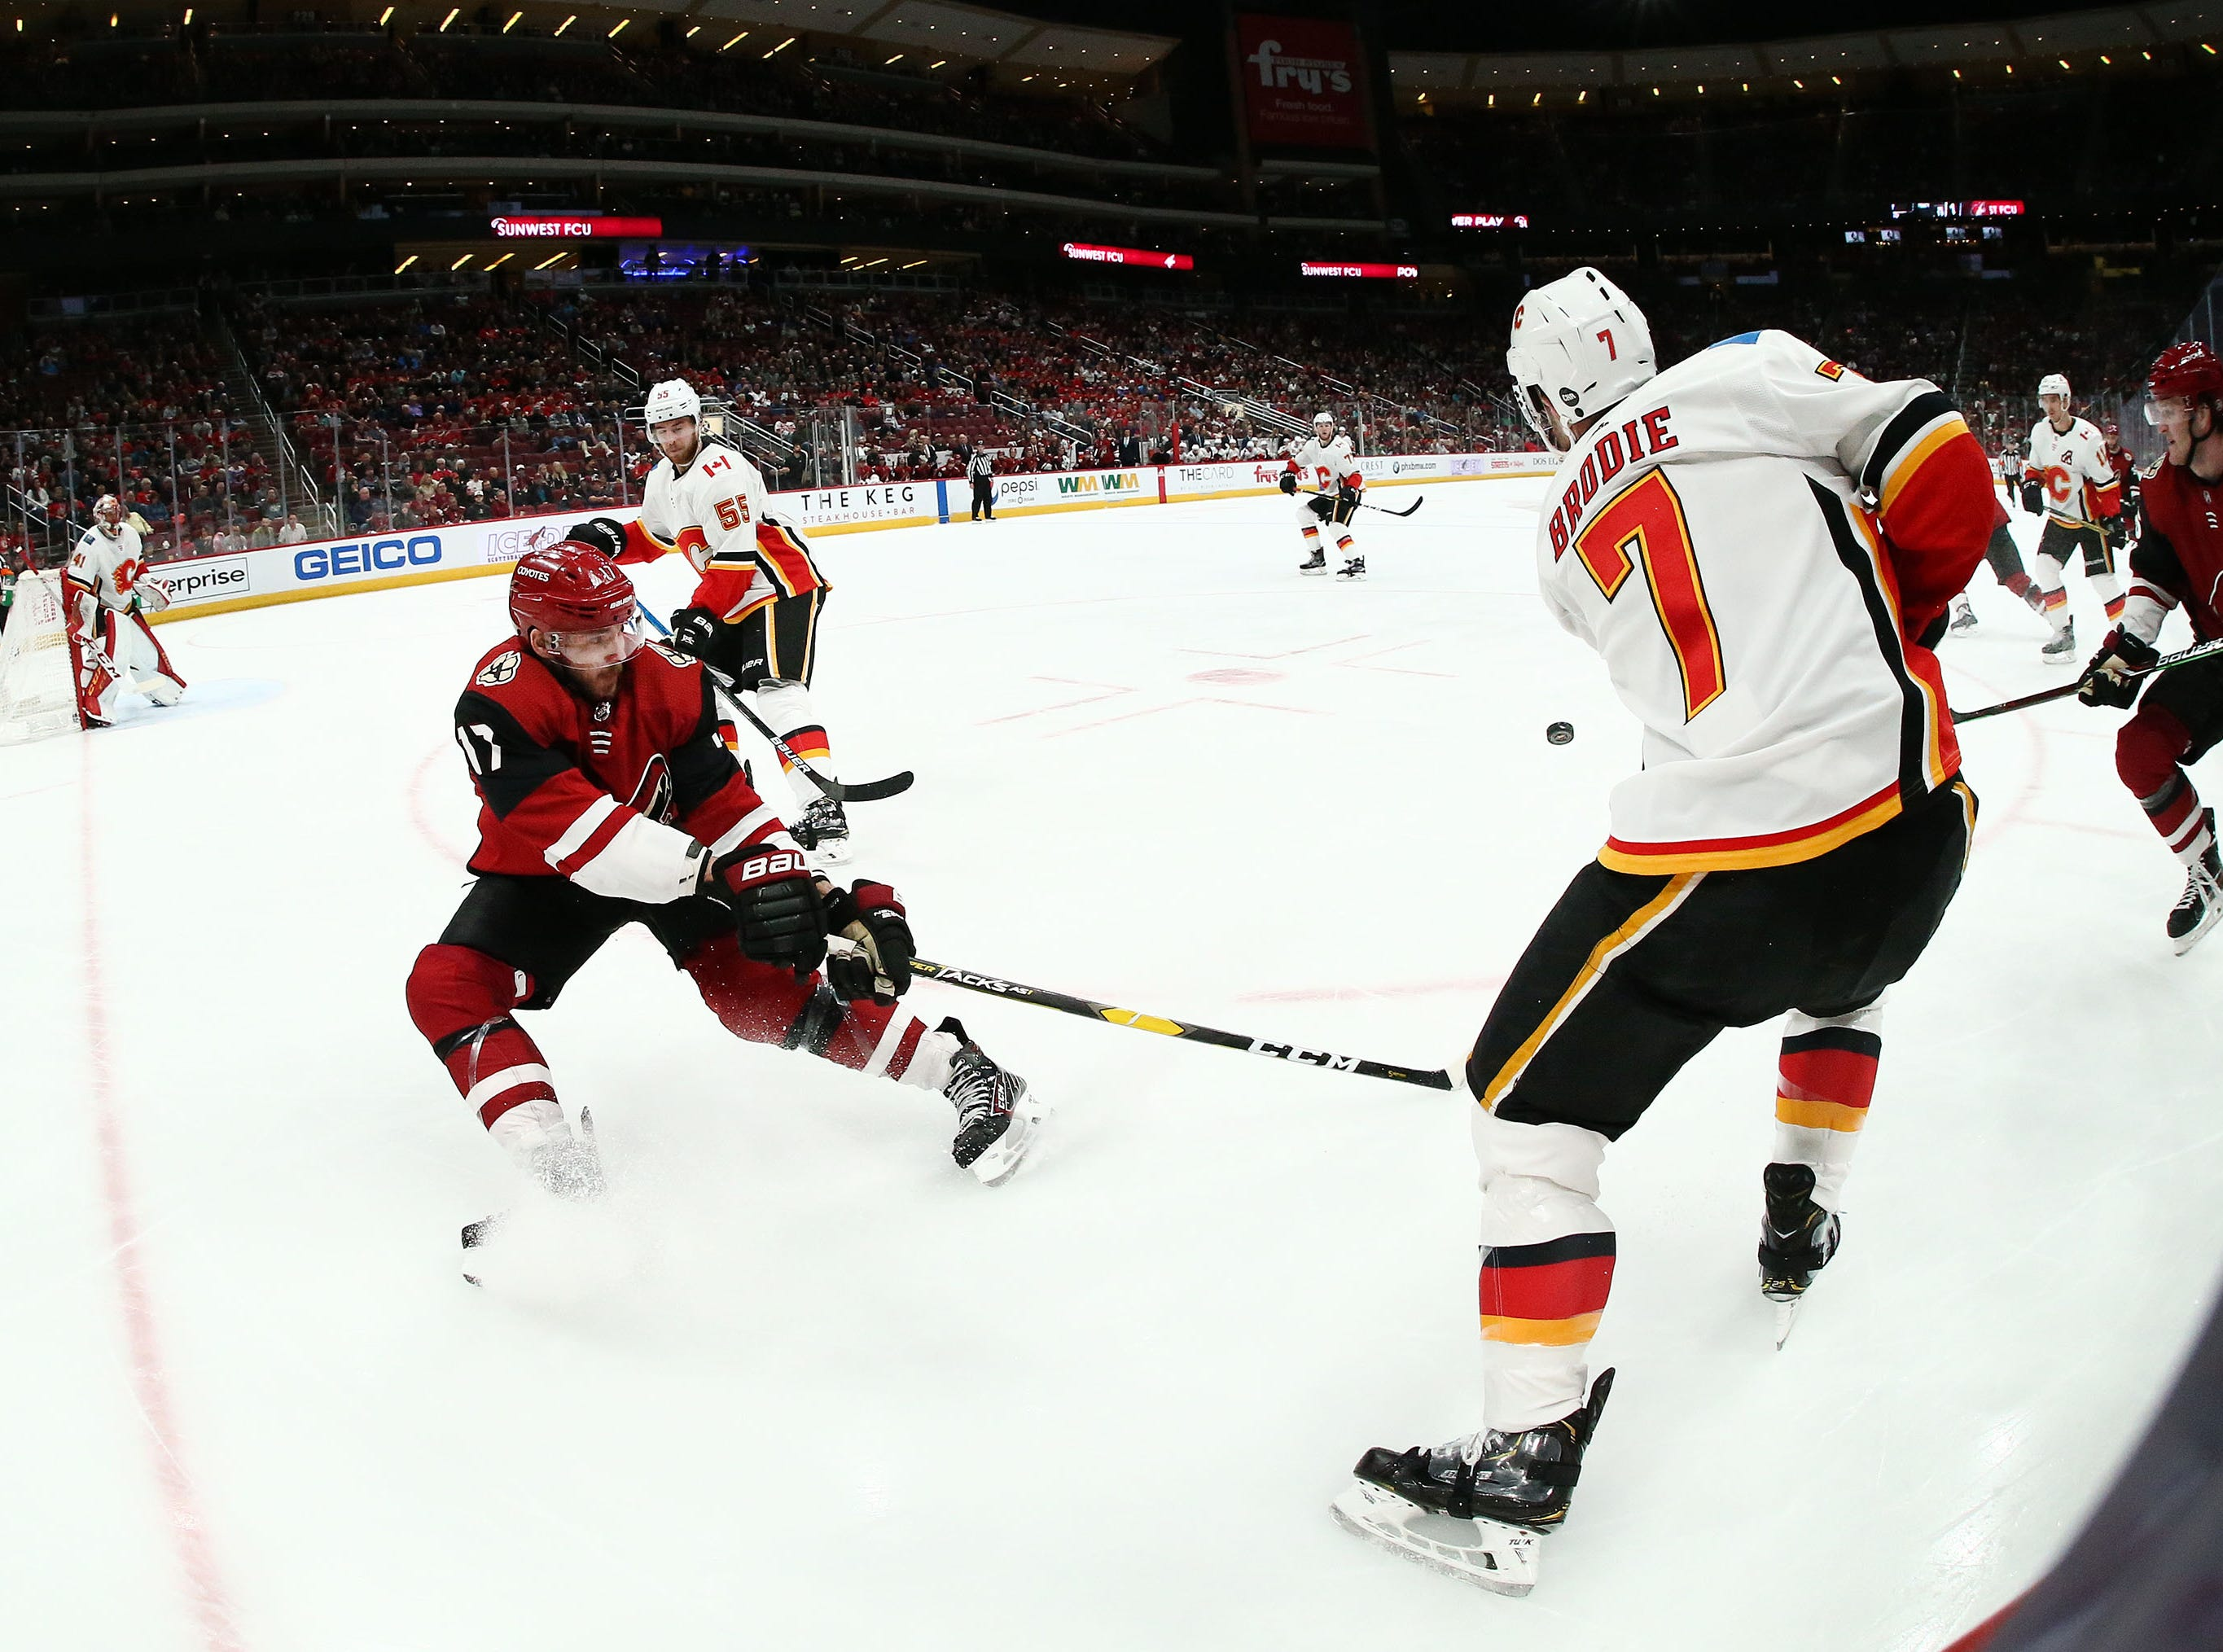 Calgary Flames defenseman TJ Brodie (7) passes the puck against Arizona Coyotes center Alex Galchenyuk (17) in the second period on Mar. 7, 2019, at Gila River Arena in Glendale, Ariz.